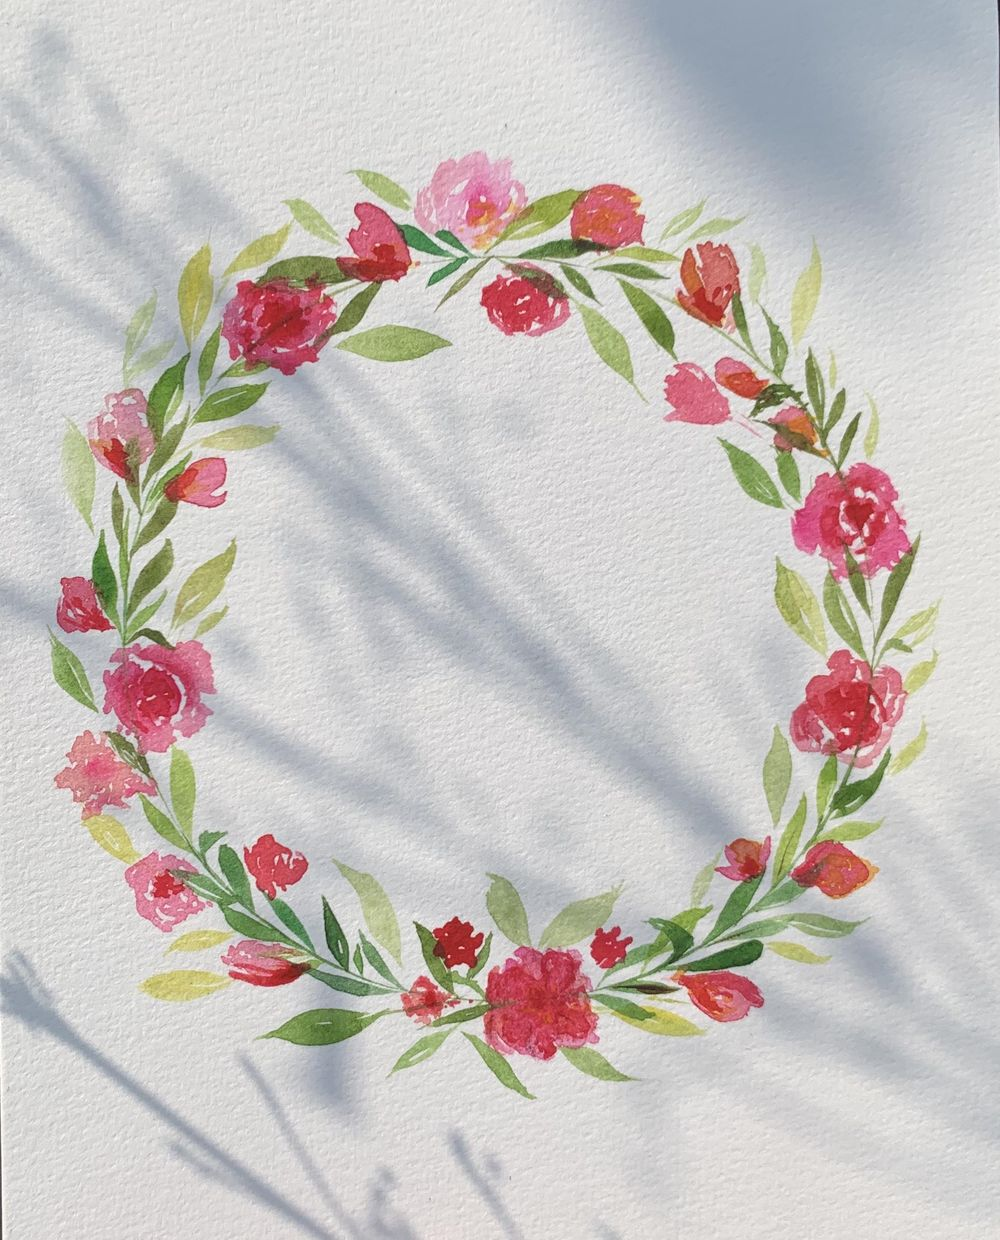 Floral wreath - image 1 - student project